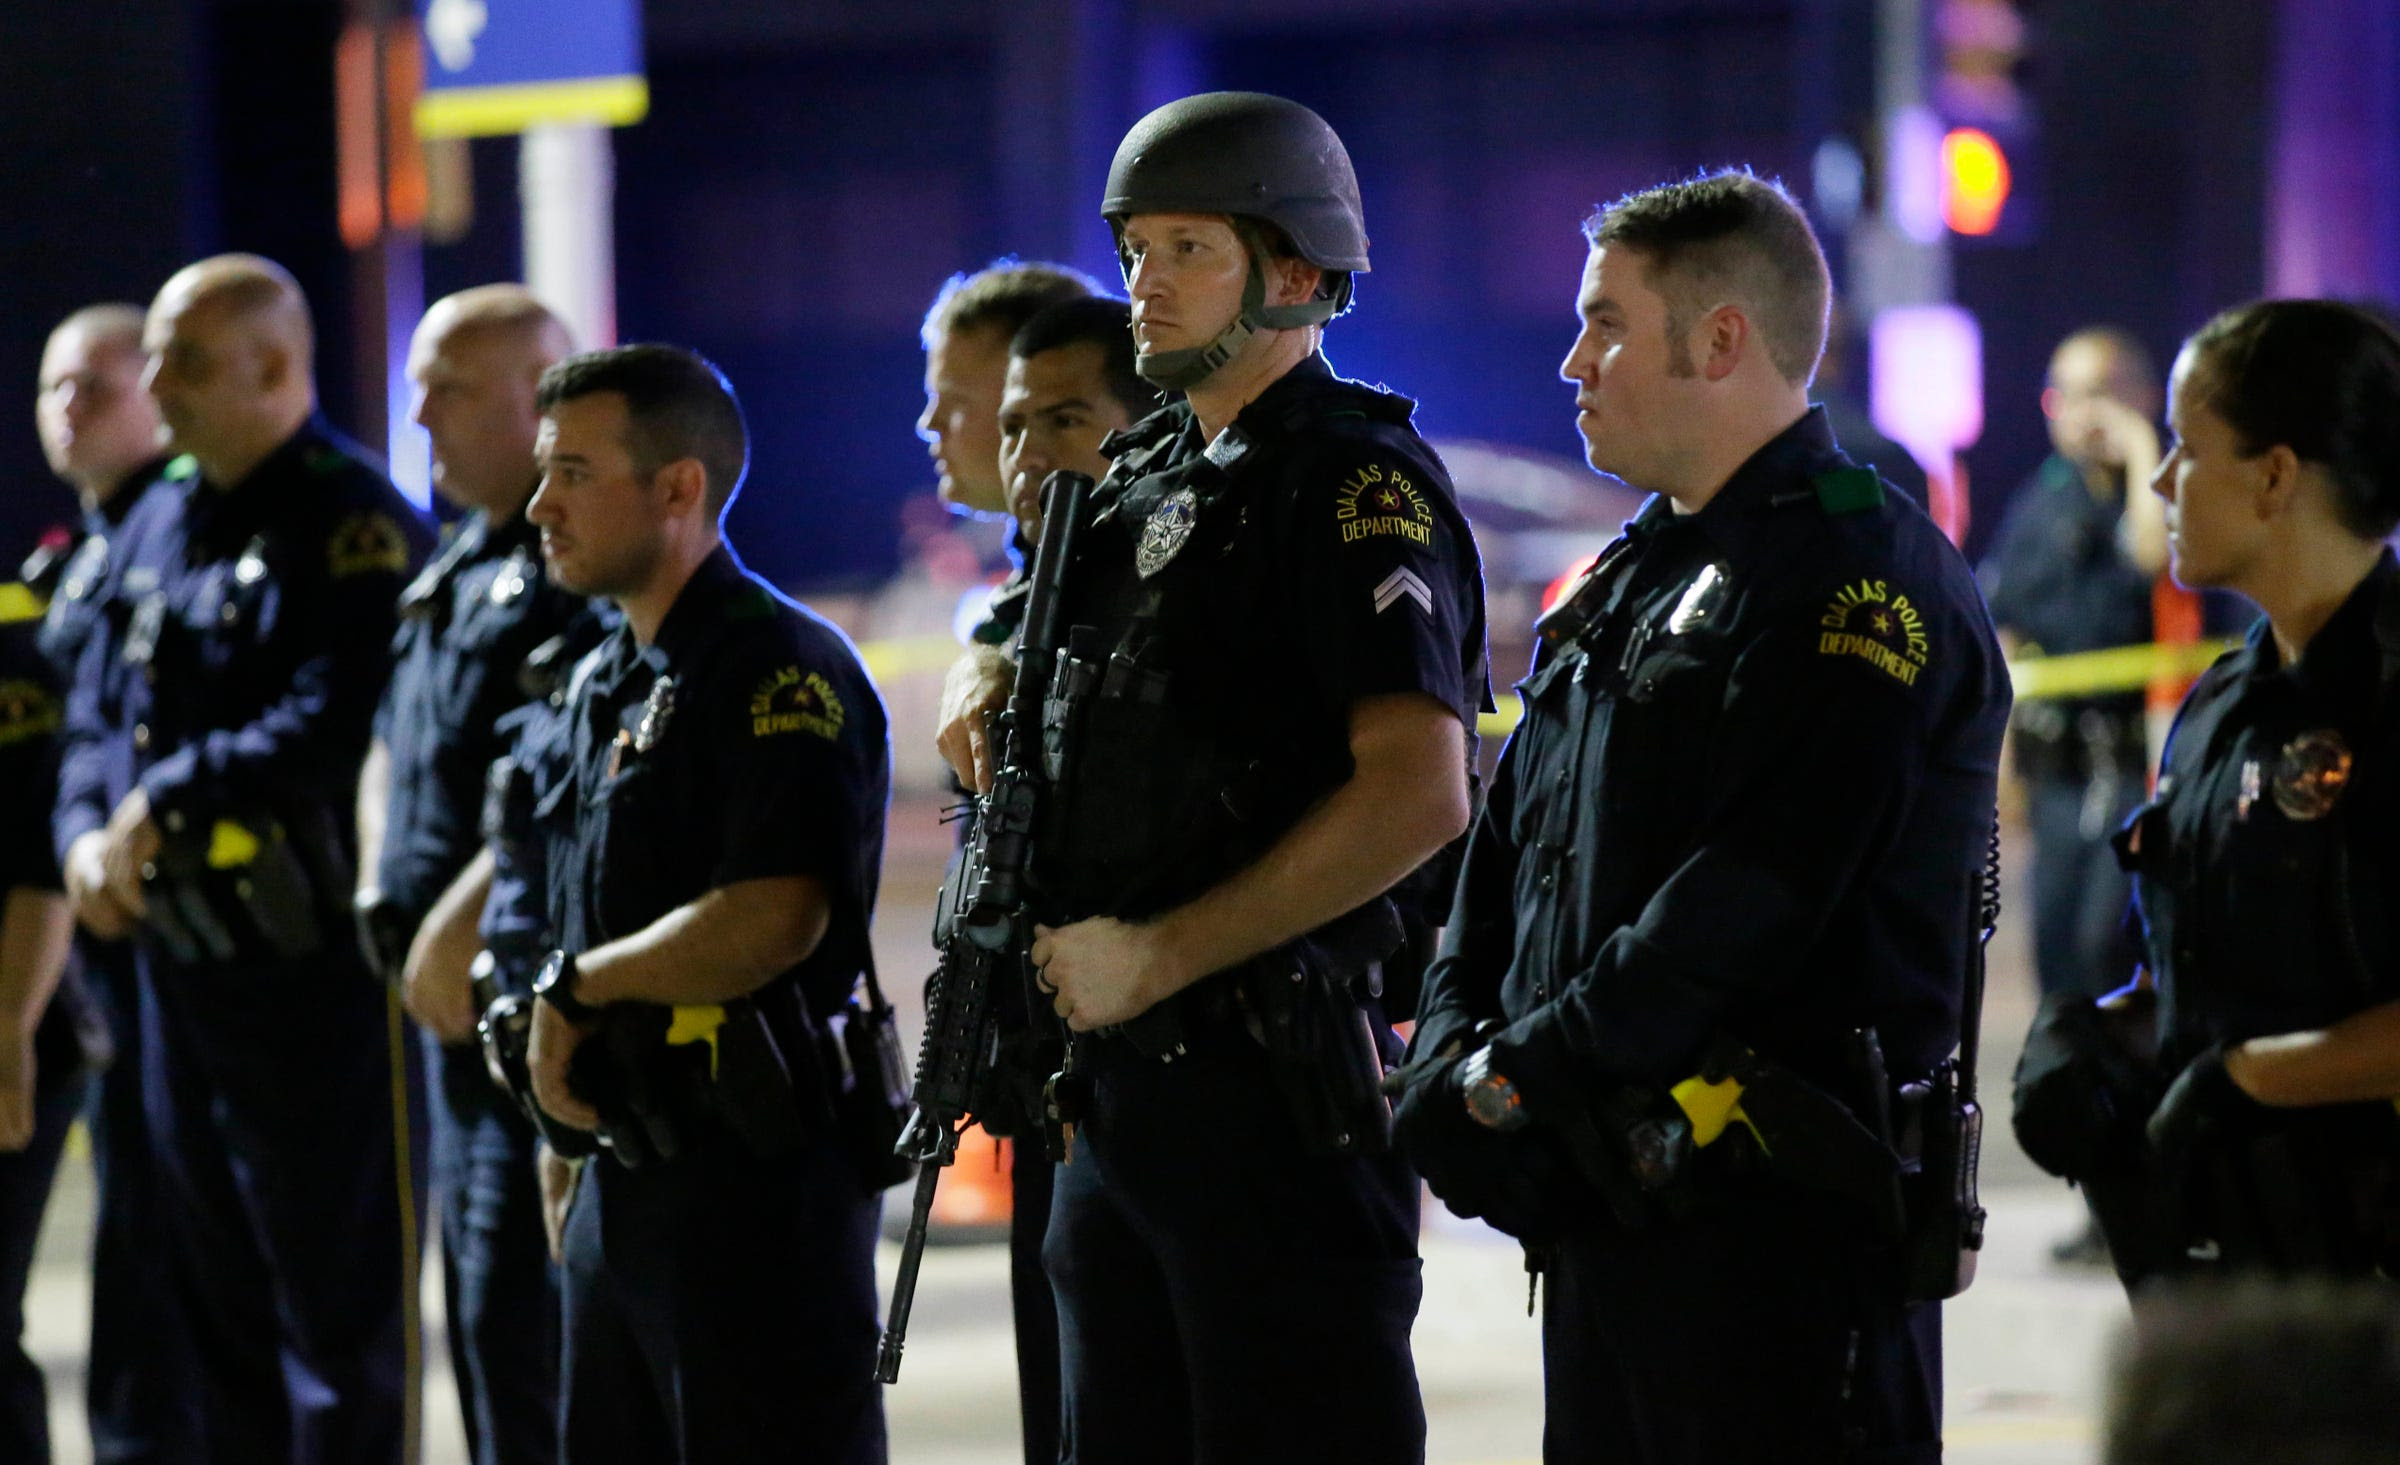 Dallas police officers stand in a line near the site of shootings in downtown Dallas, early Friday, July 8, 2016. Snipers opened fire on police officers, police said; some of the officers were killed.